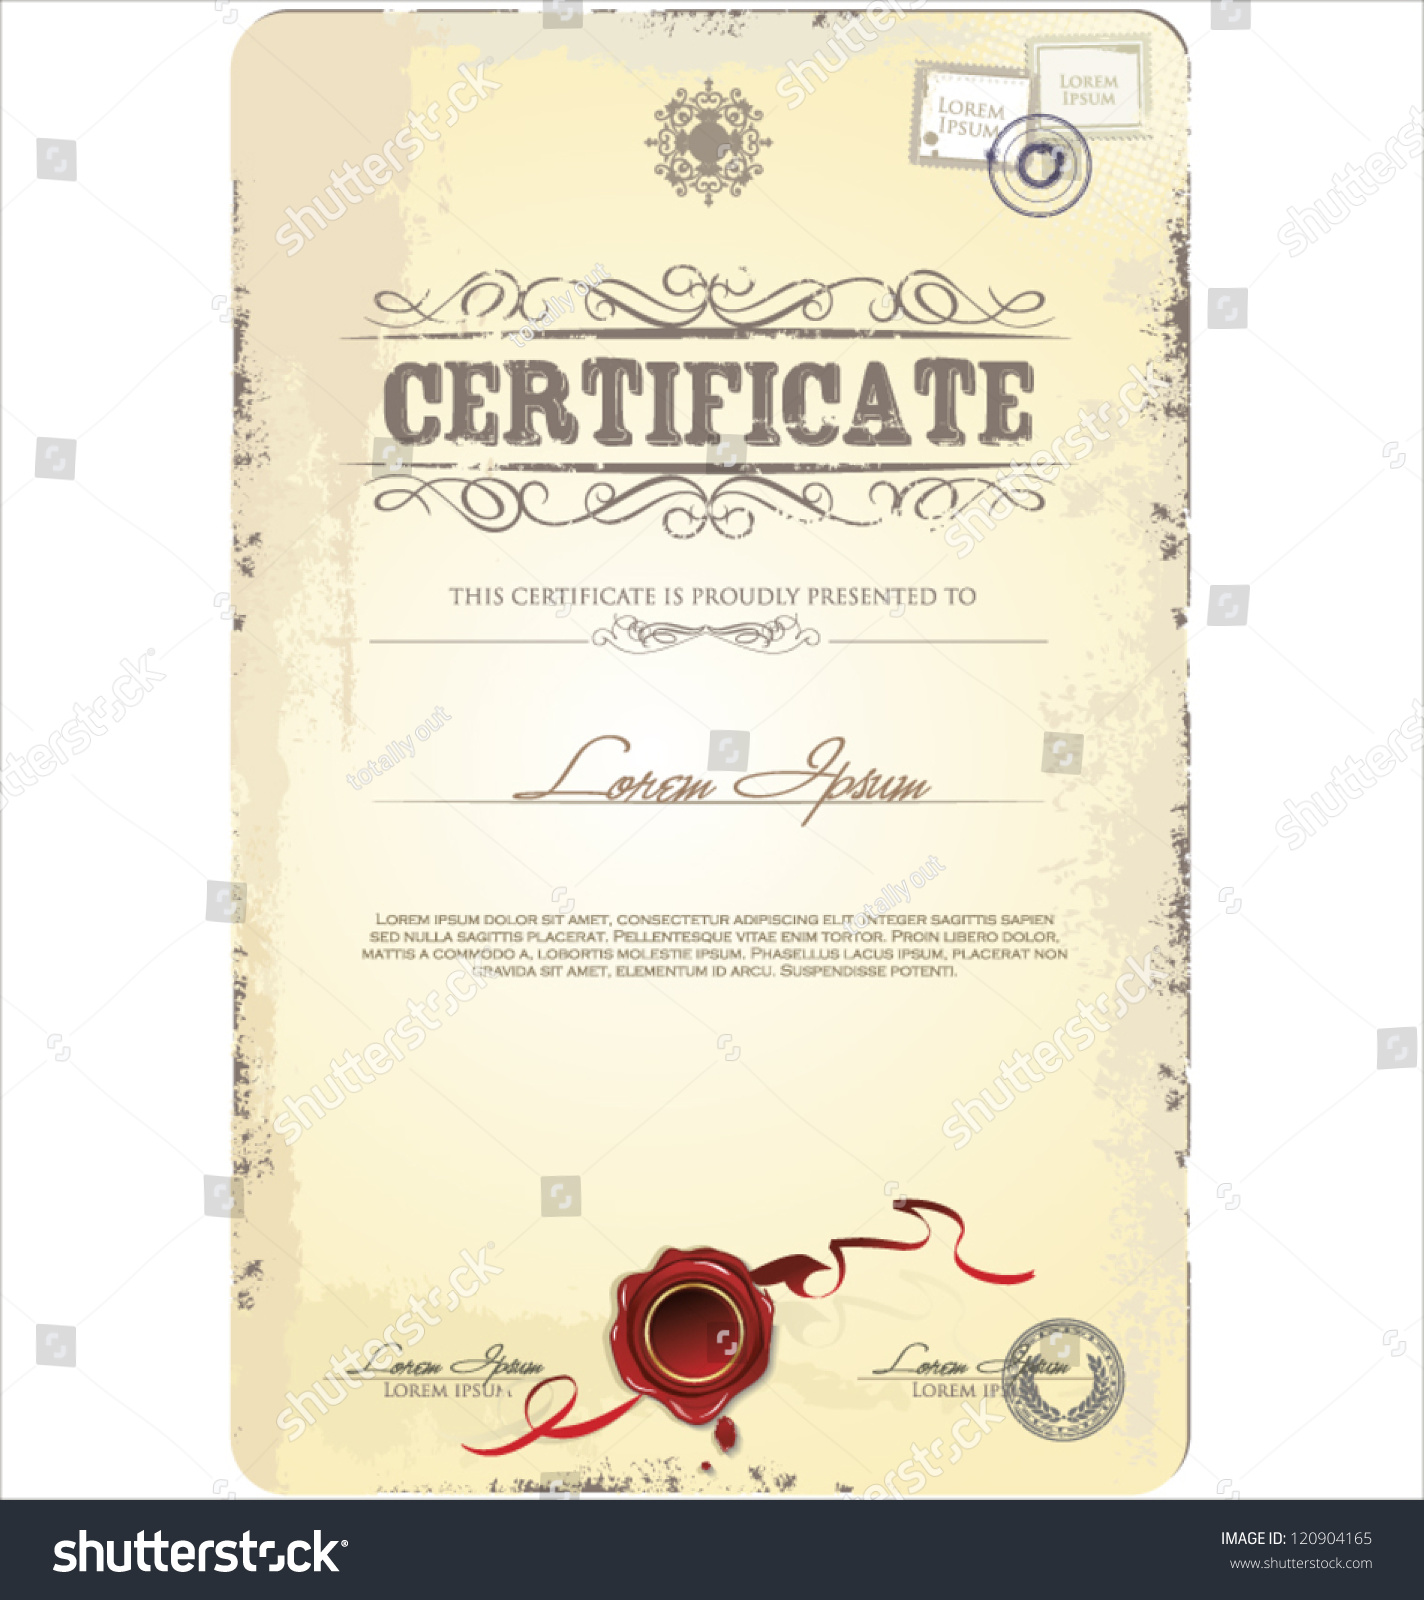 Old vintage certificate template vector illustration stock vector old vintage certificate template vector illustration xflitez Gallery